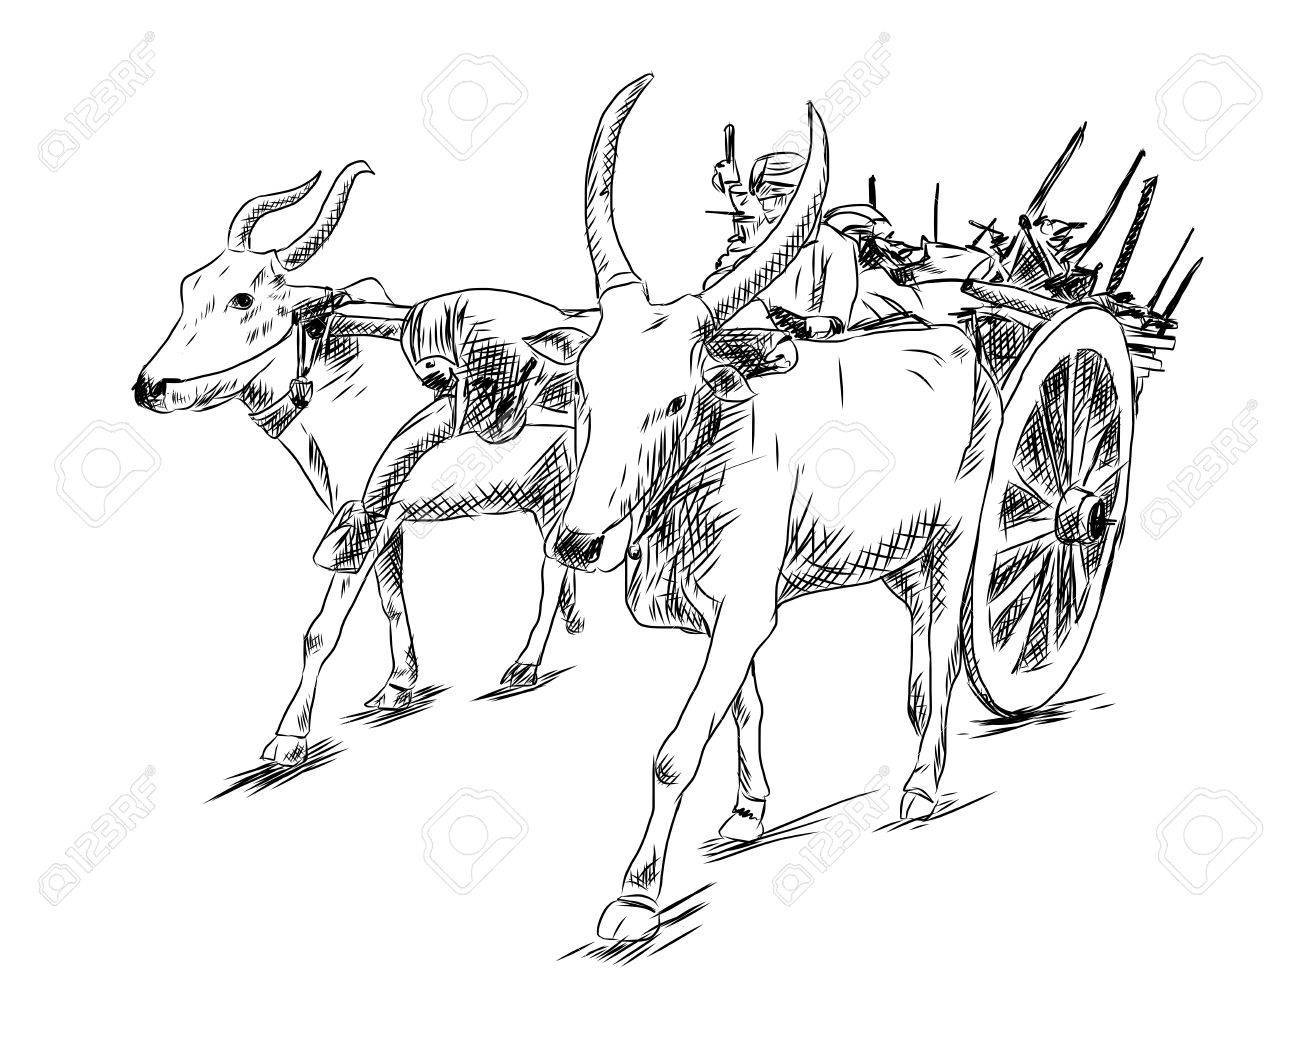 Bullock cart clipart graphic black and white library Bullock cart clipart 9 » Clipart Portal graphic black and white library